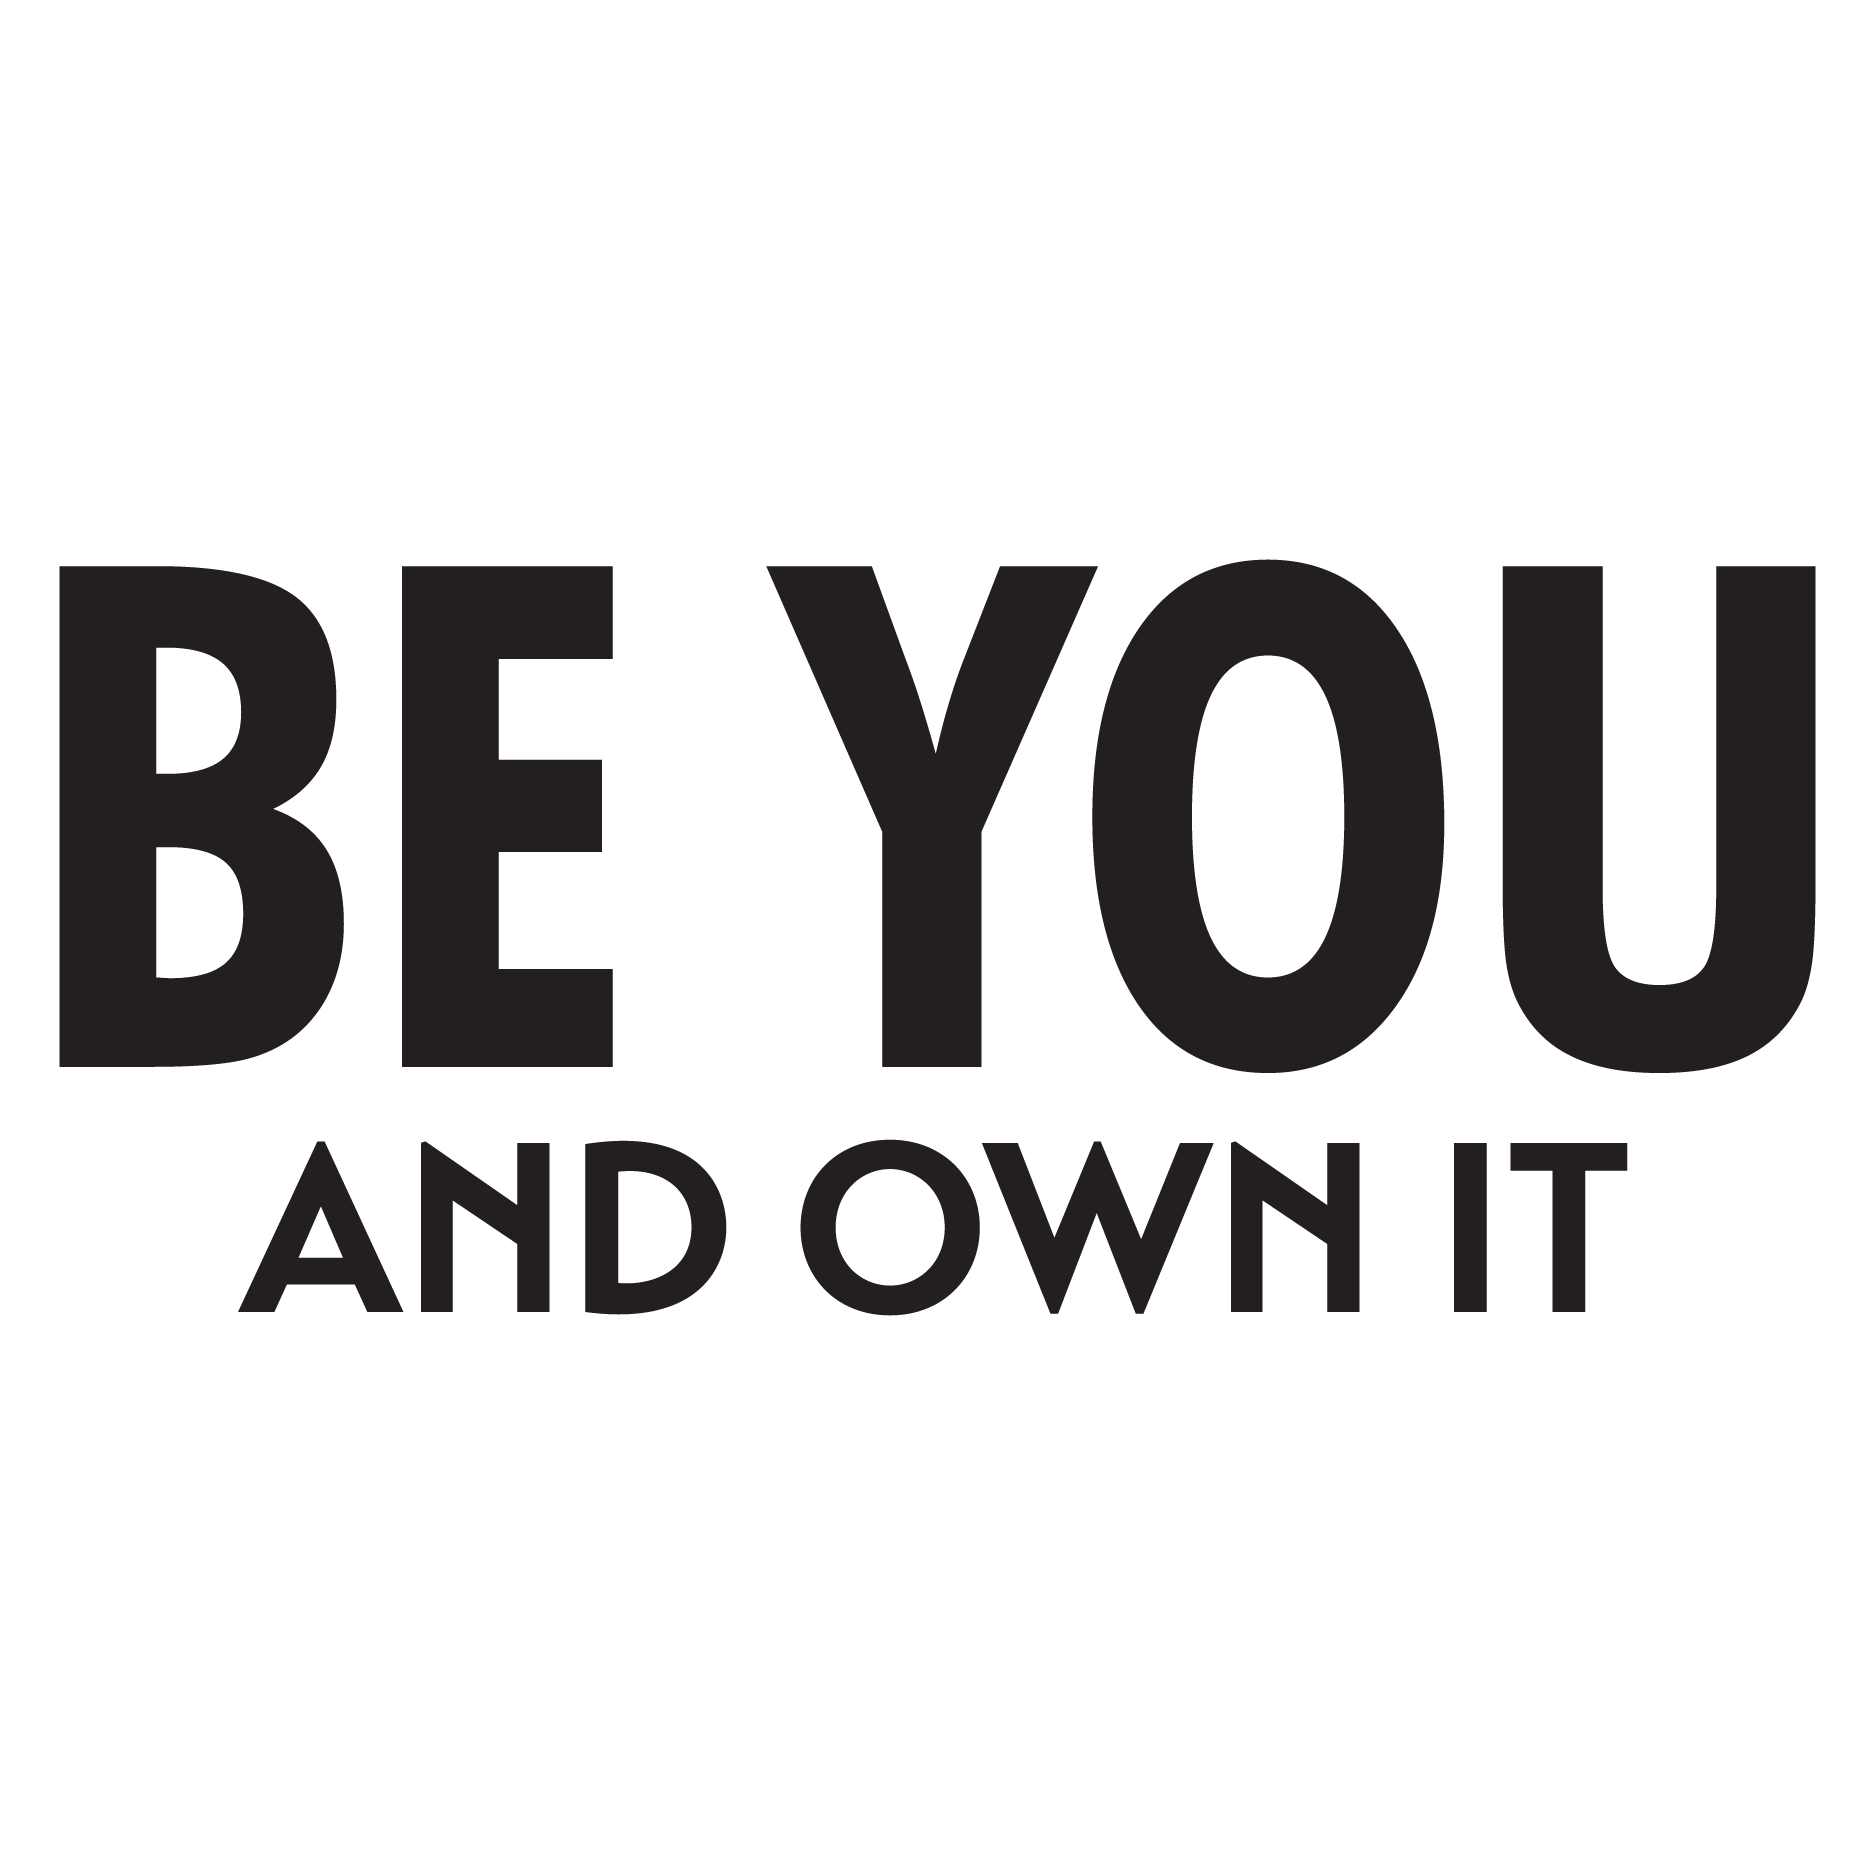 Be You And Own It Girls Wall Quotes™ Decal | WallQuotes.com